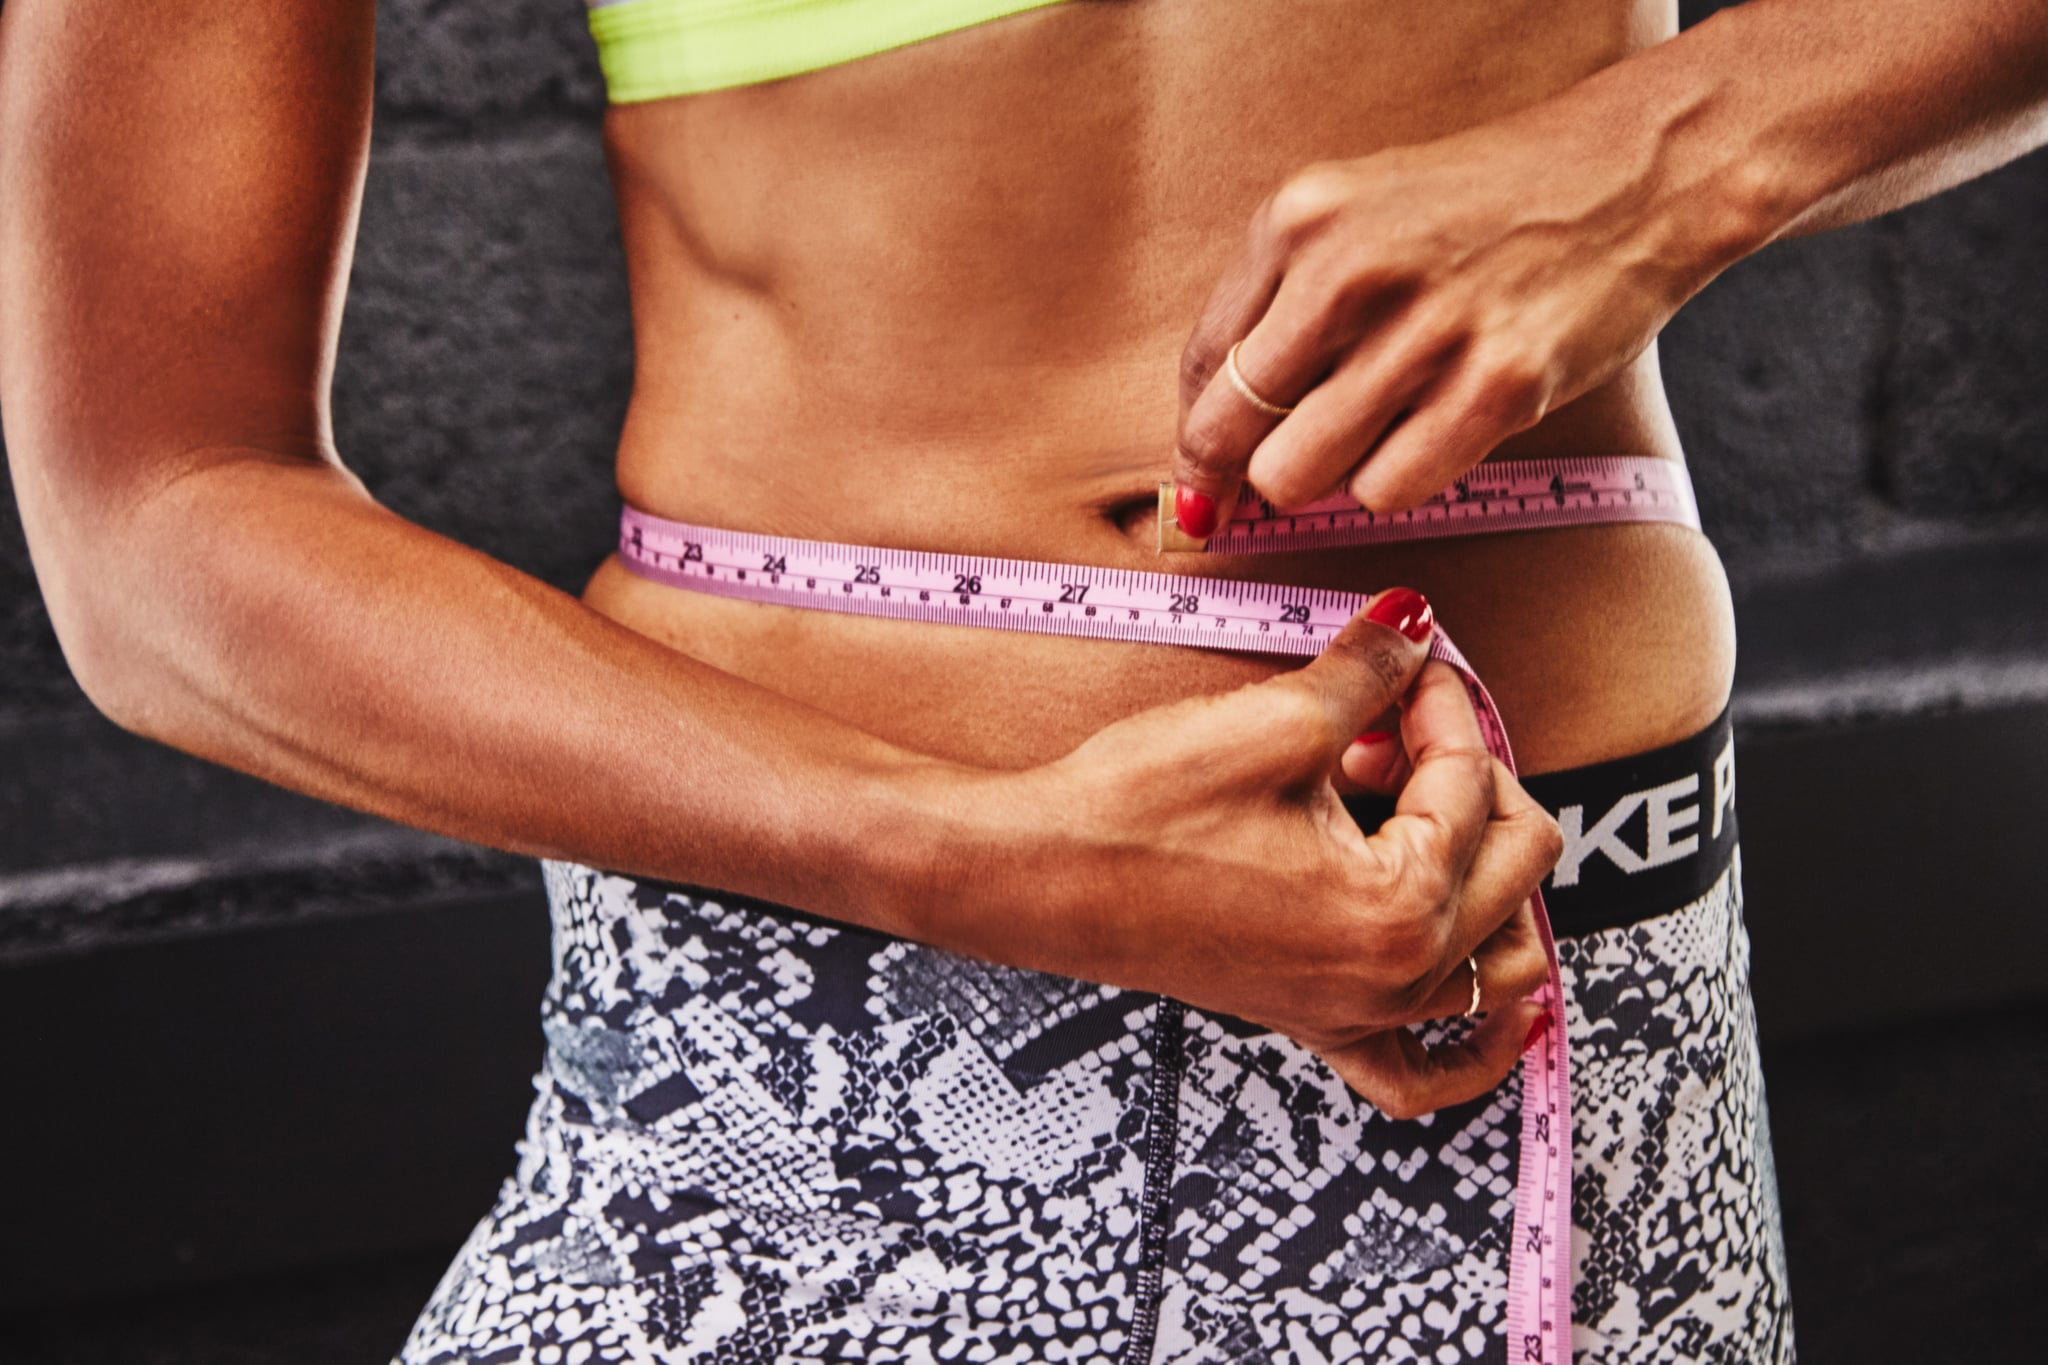 A Dietitian Reveals How Many Pounds You Should Lose in a Week to Keep the Weight Off For Good